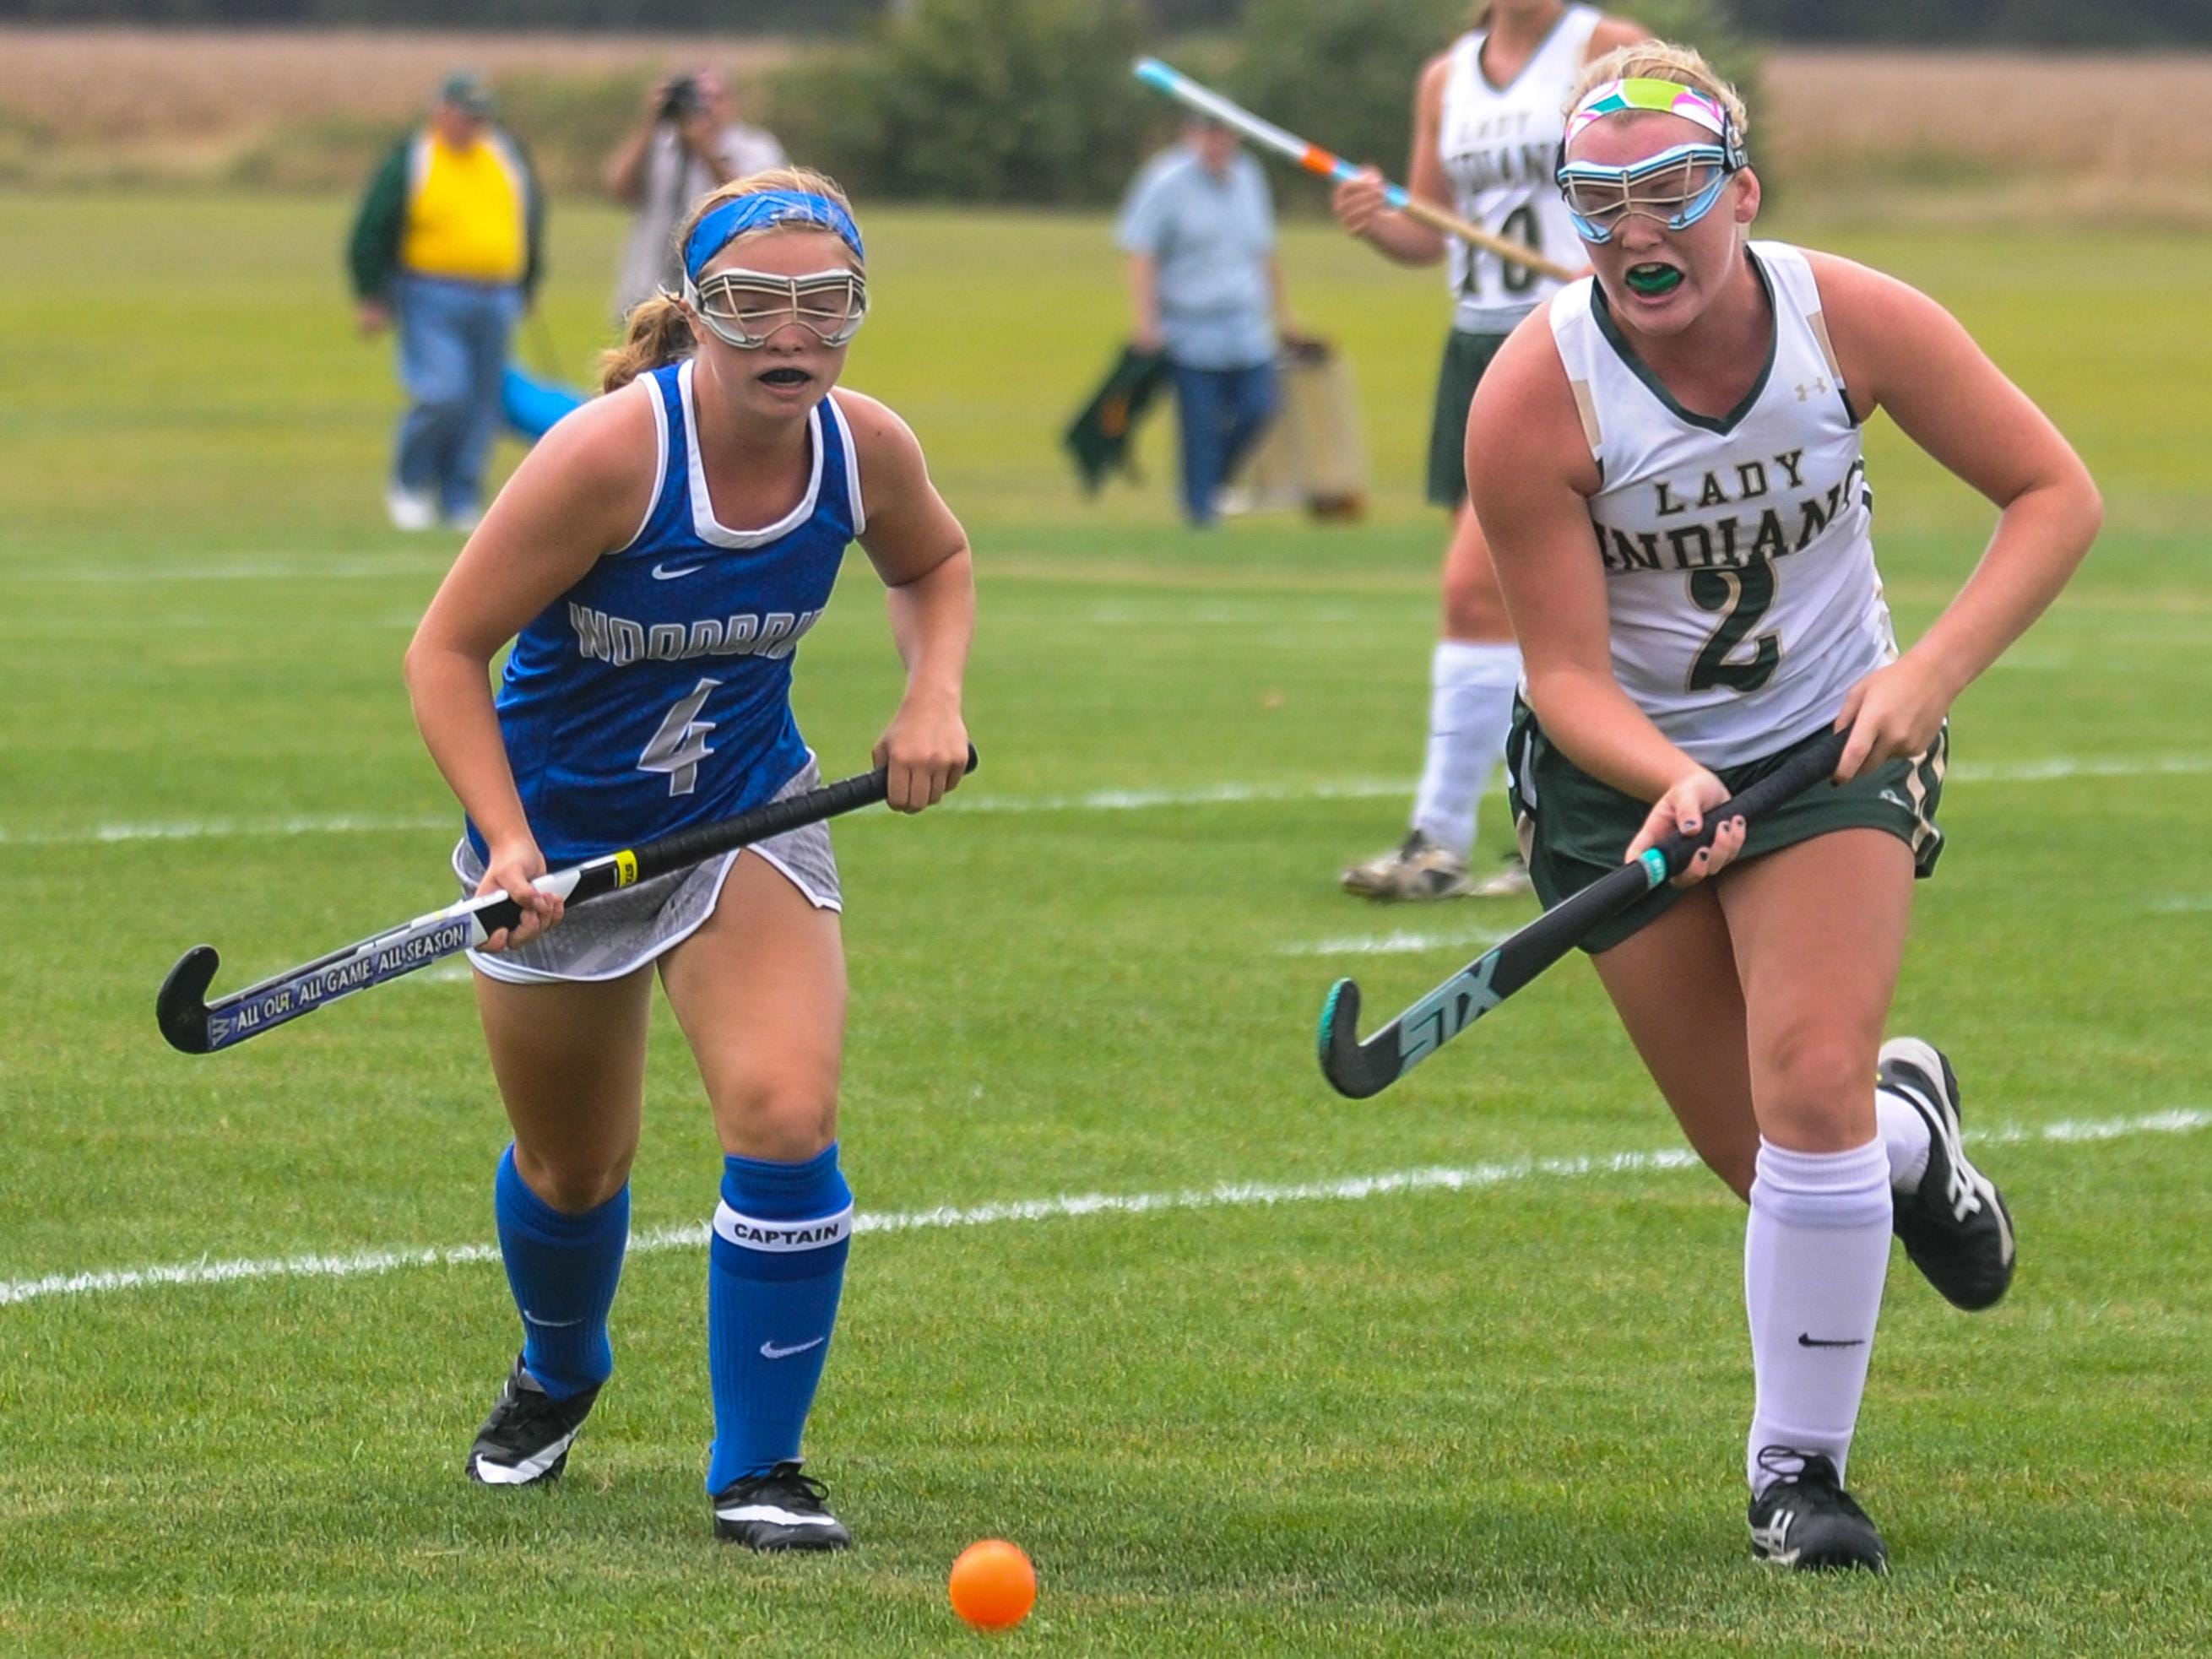 Indian River's Callie McDowell, right, works up field against Woodbridge on Tuesday afternoon in Dagsboro.